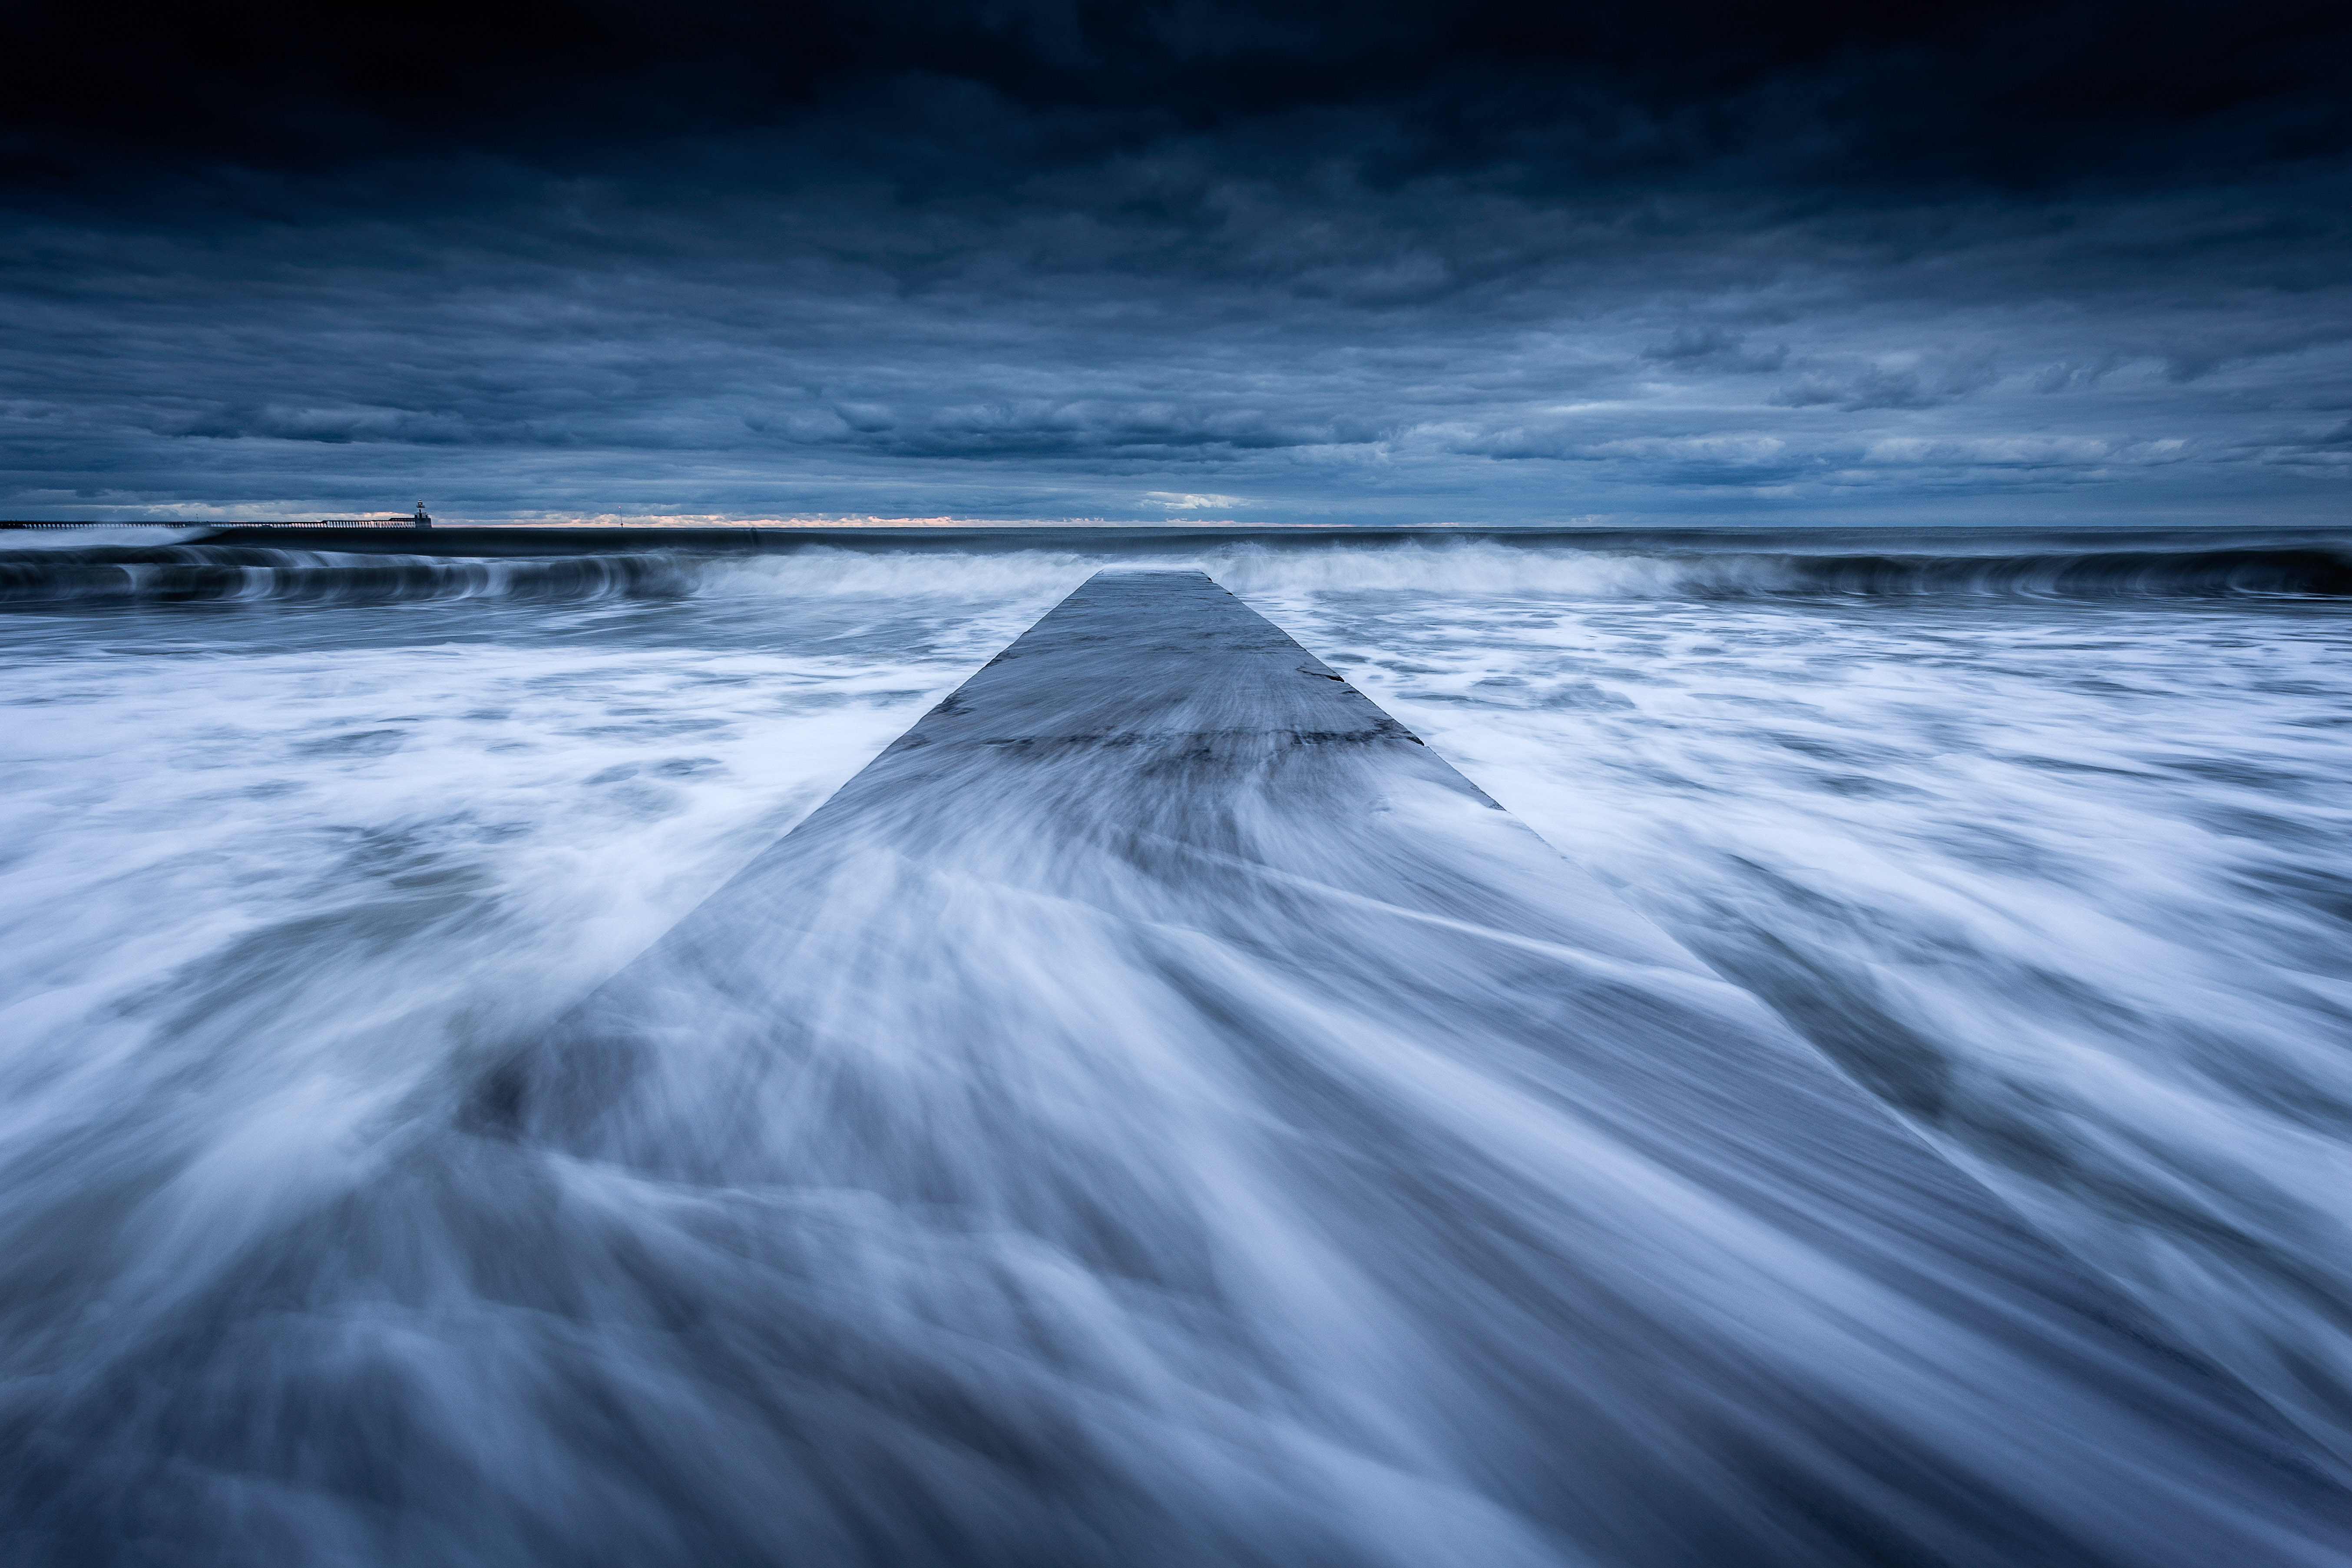 Waves sweep across the concrete jetty at Blyth Beach on the Northumberland coast.